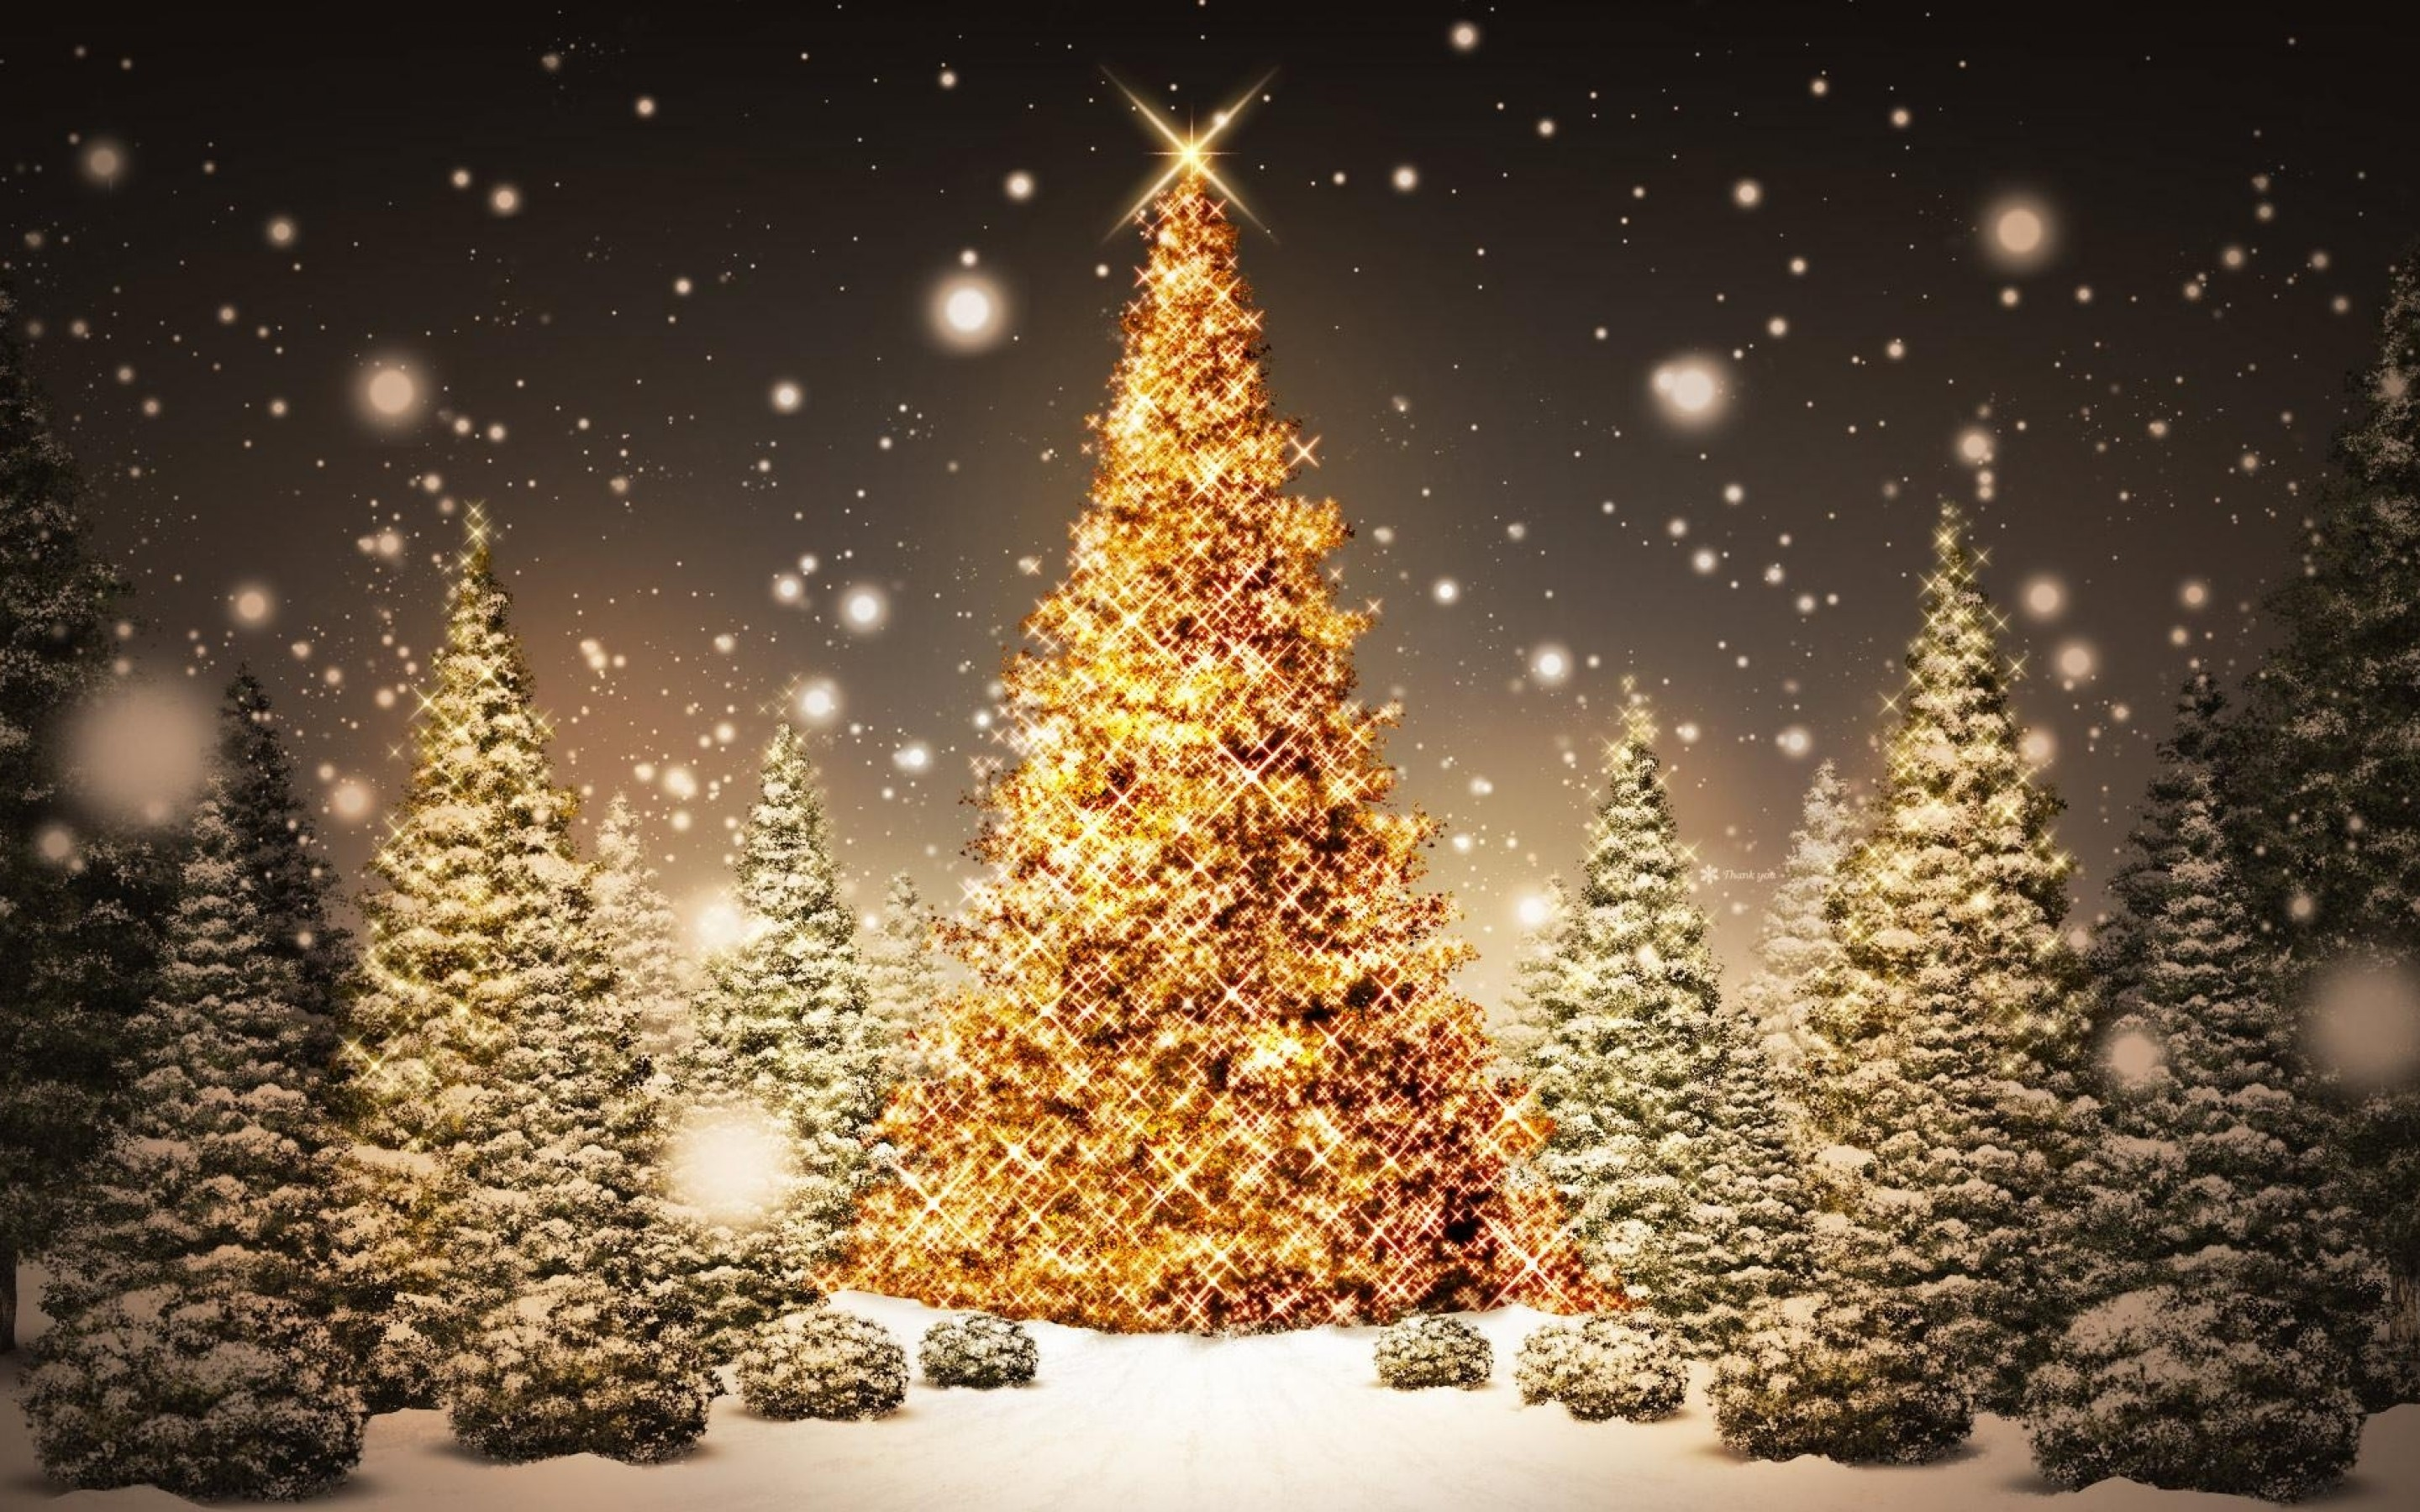 Wallpaper About Christmas